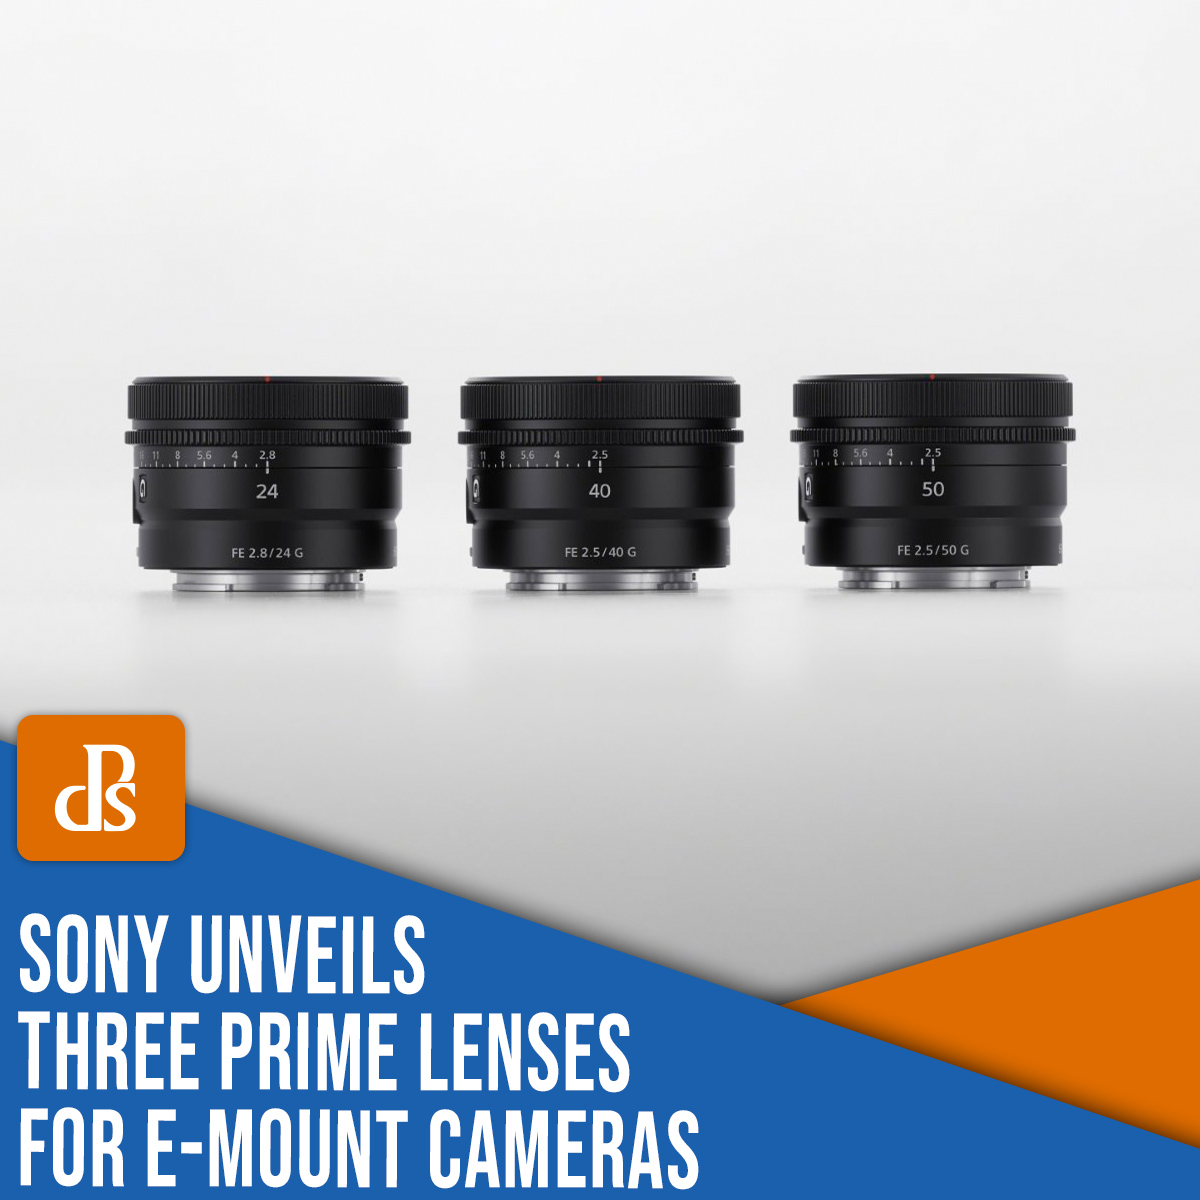 Sony unveils three prime lenses for E-mount cameras